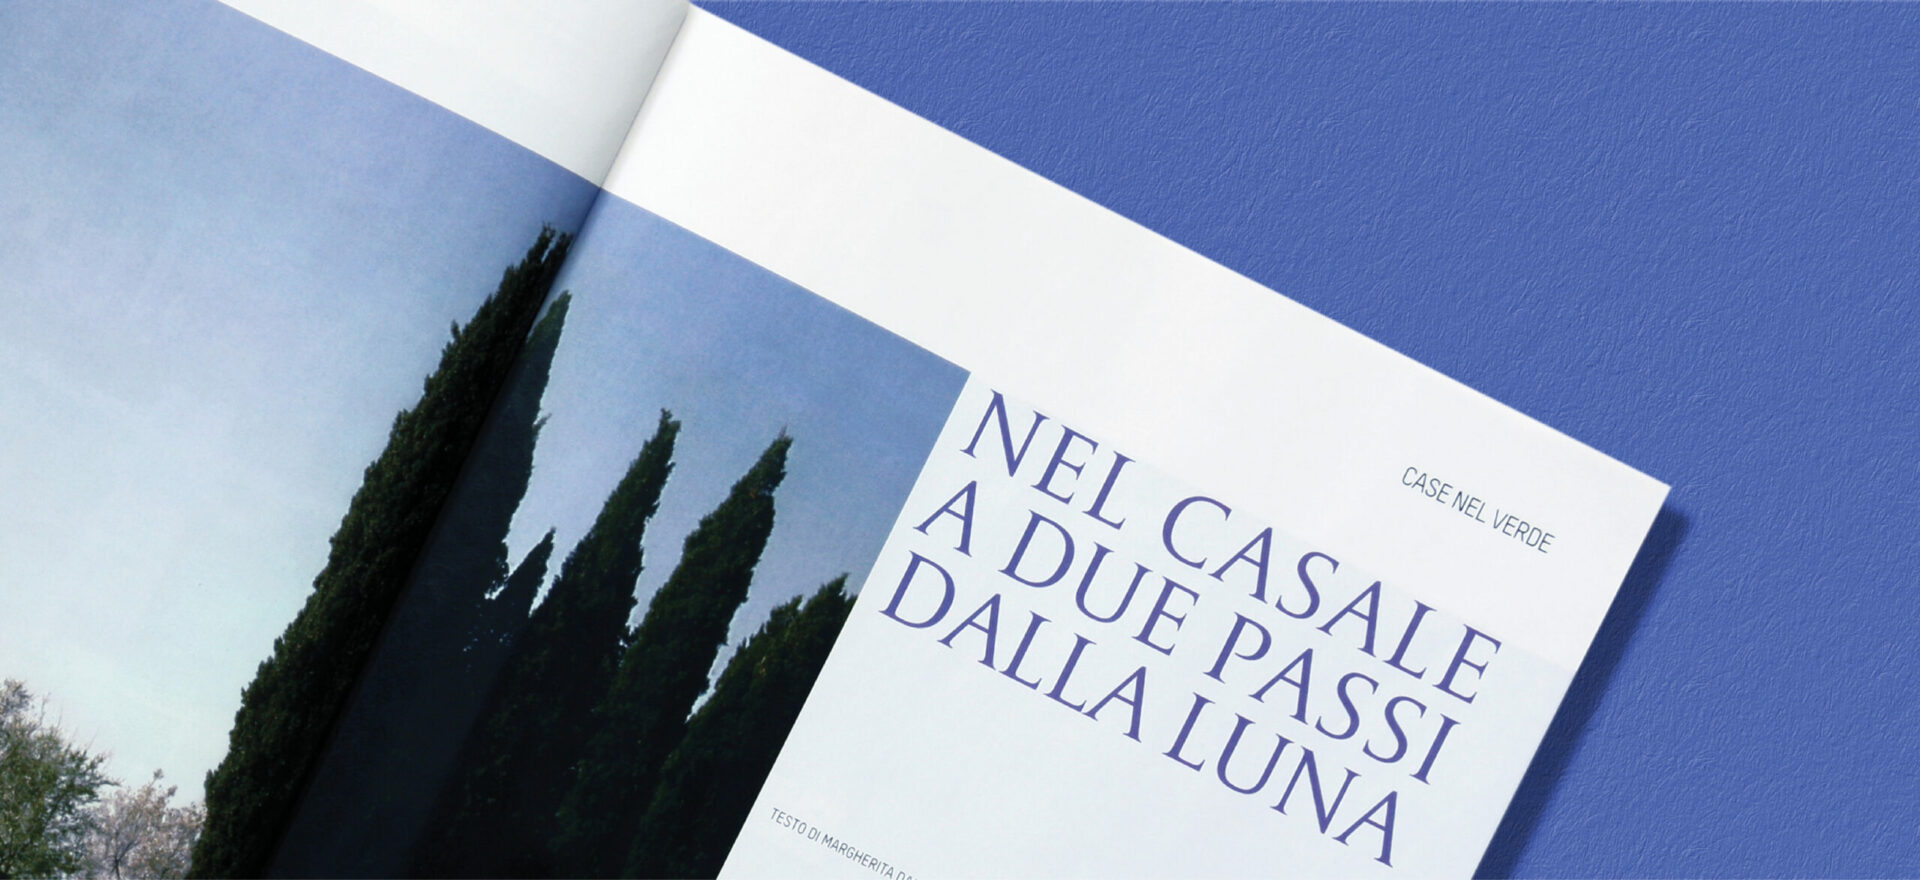 Close up photo of an opened Ville Giardini Magazine showing detail of the typography and composition of text and images used in the project of the Art Direction and Graphic Design for Visibilia Editore in a light blue background.